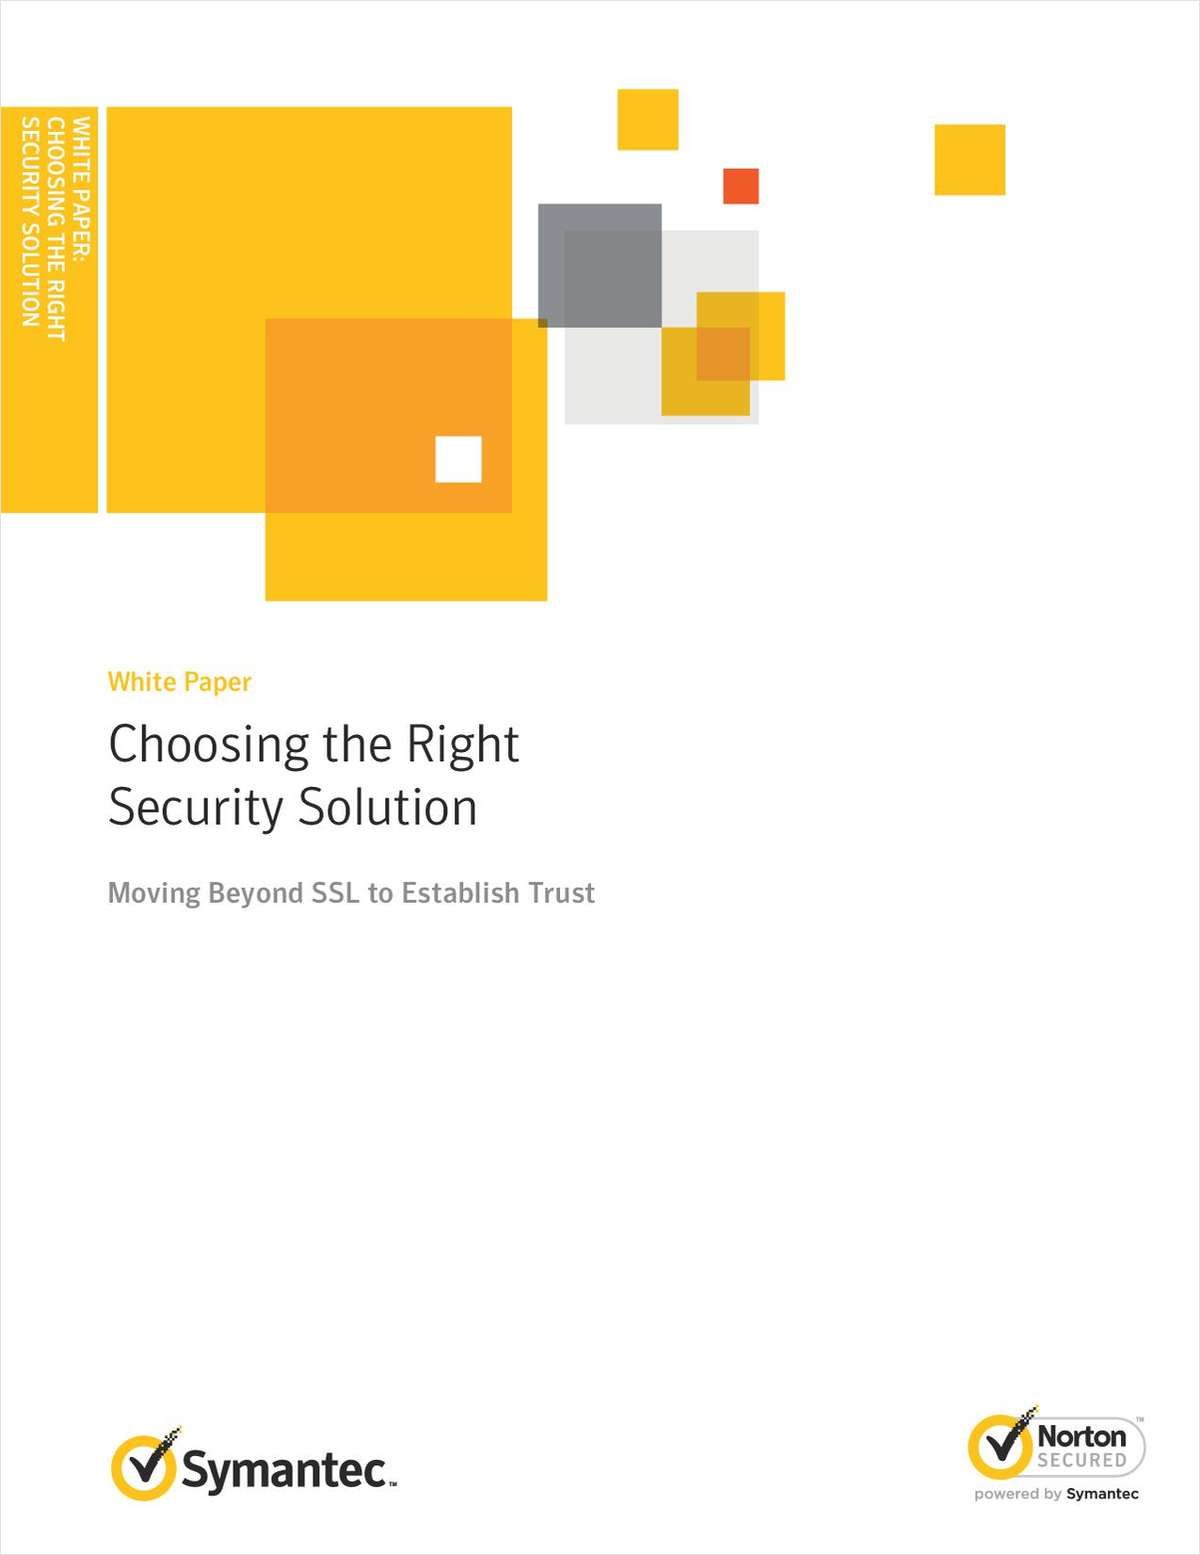 Choosing the Right Security Solution: Moving Beyond SSL to Establish Trust